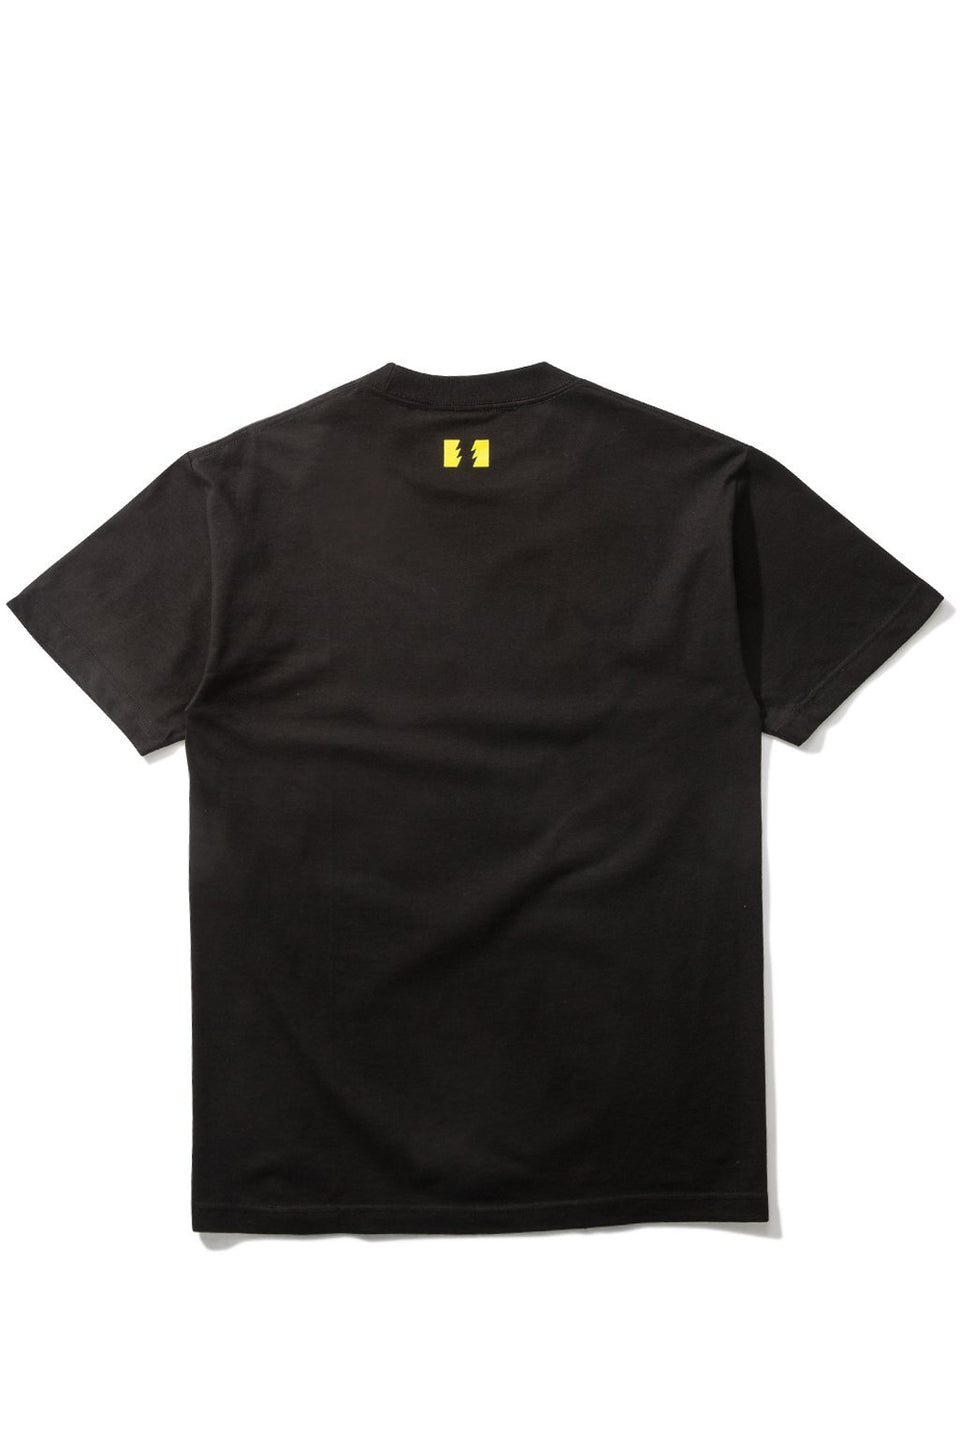 Sunny T-shirt-TOPS-The Hundreds UK